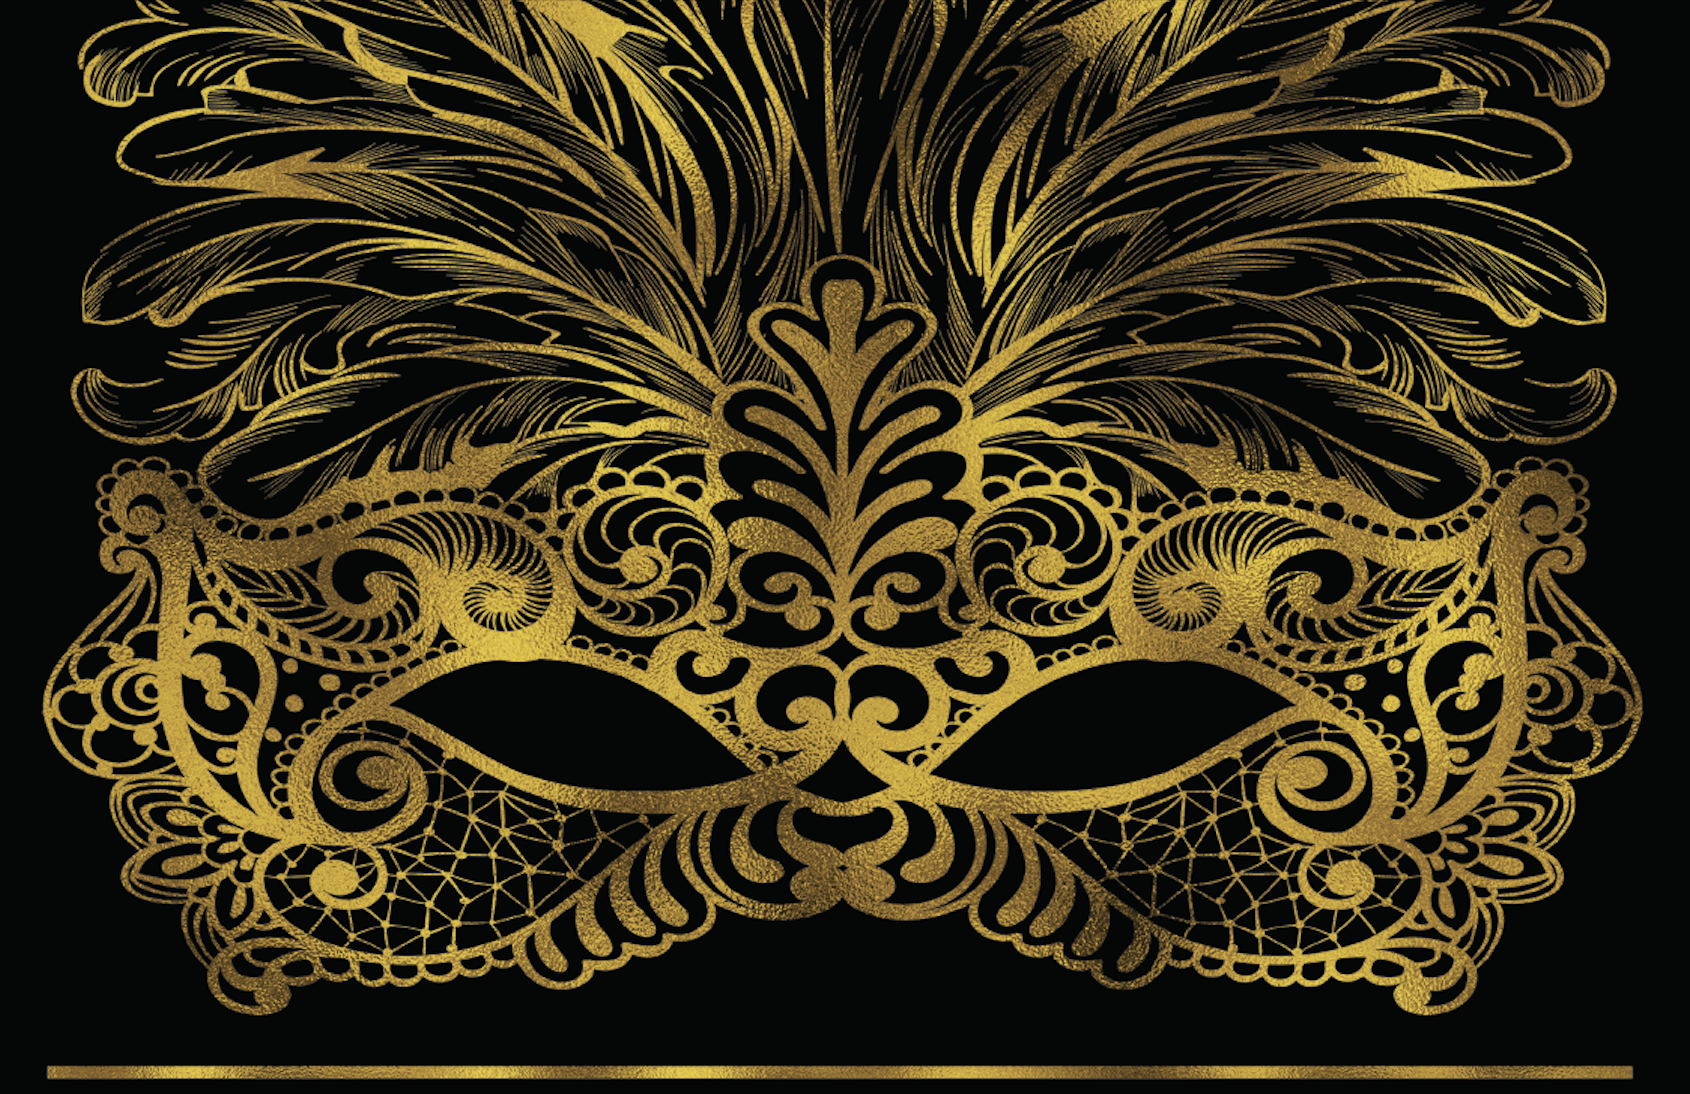 The HoPe Legacy Masquerade Ball image